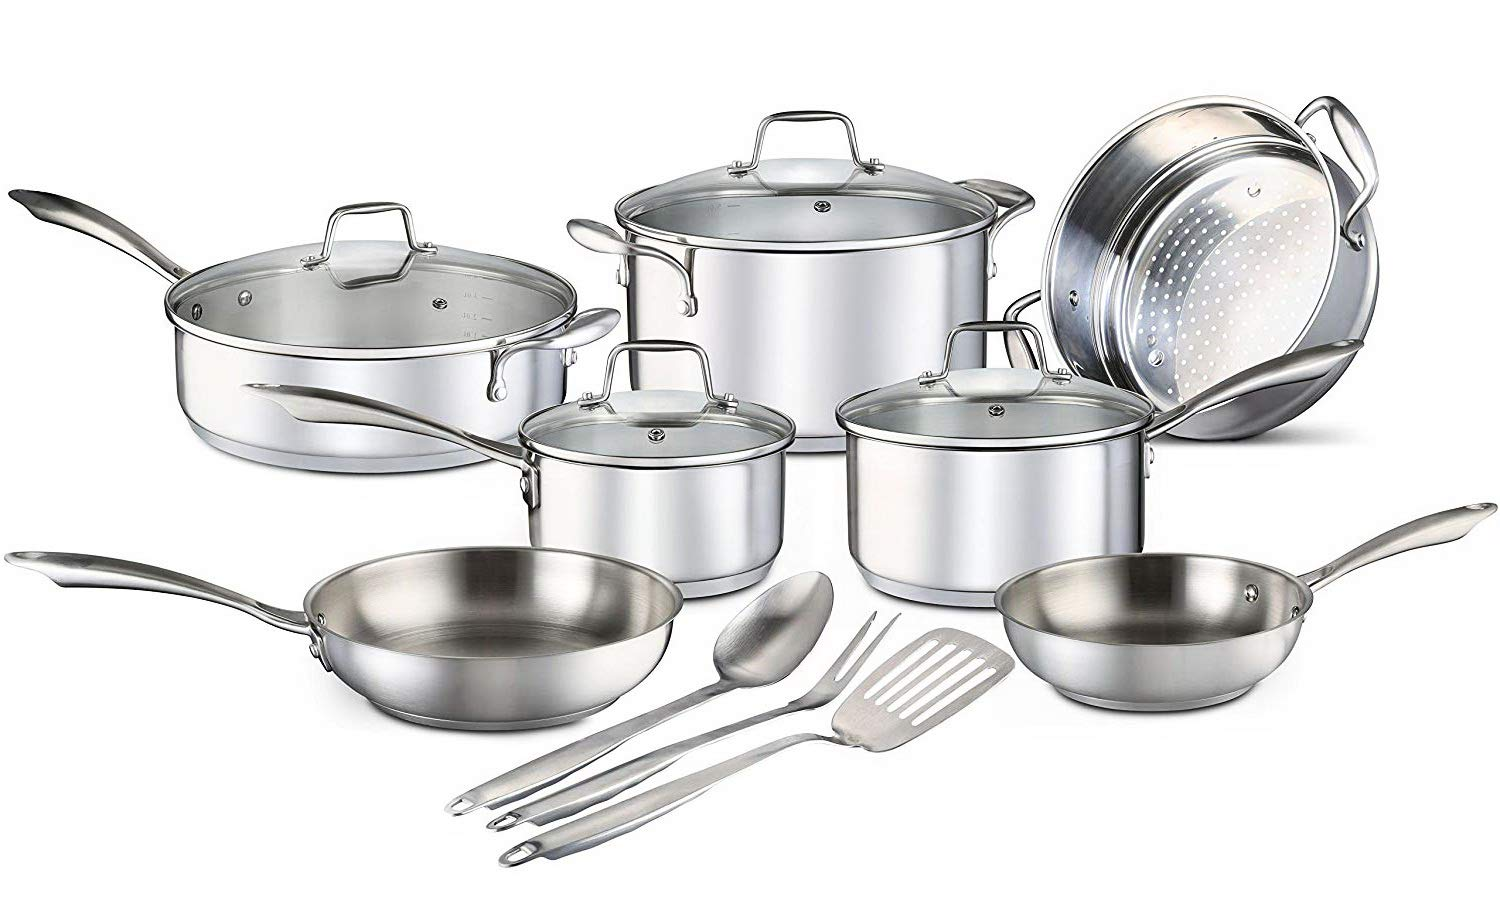 Cookware Set. Best Pots and Pans Stainless Steel Cooking Frying Kit With Glass Lids. Frying Pans, Sauce Pans, Stock Pot, Saute Pan, Steamer Basket, Kitchen Tools. Silver (14 Piece)